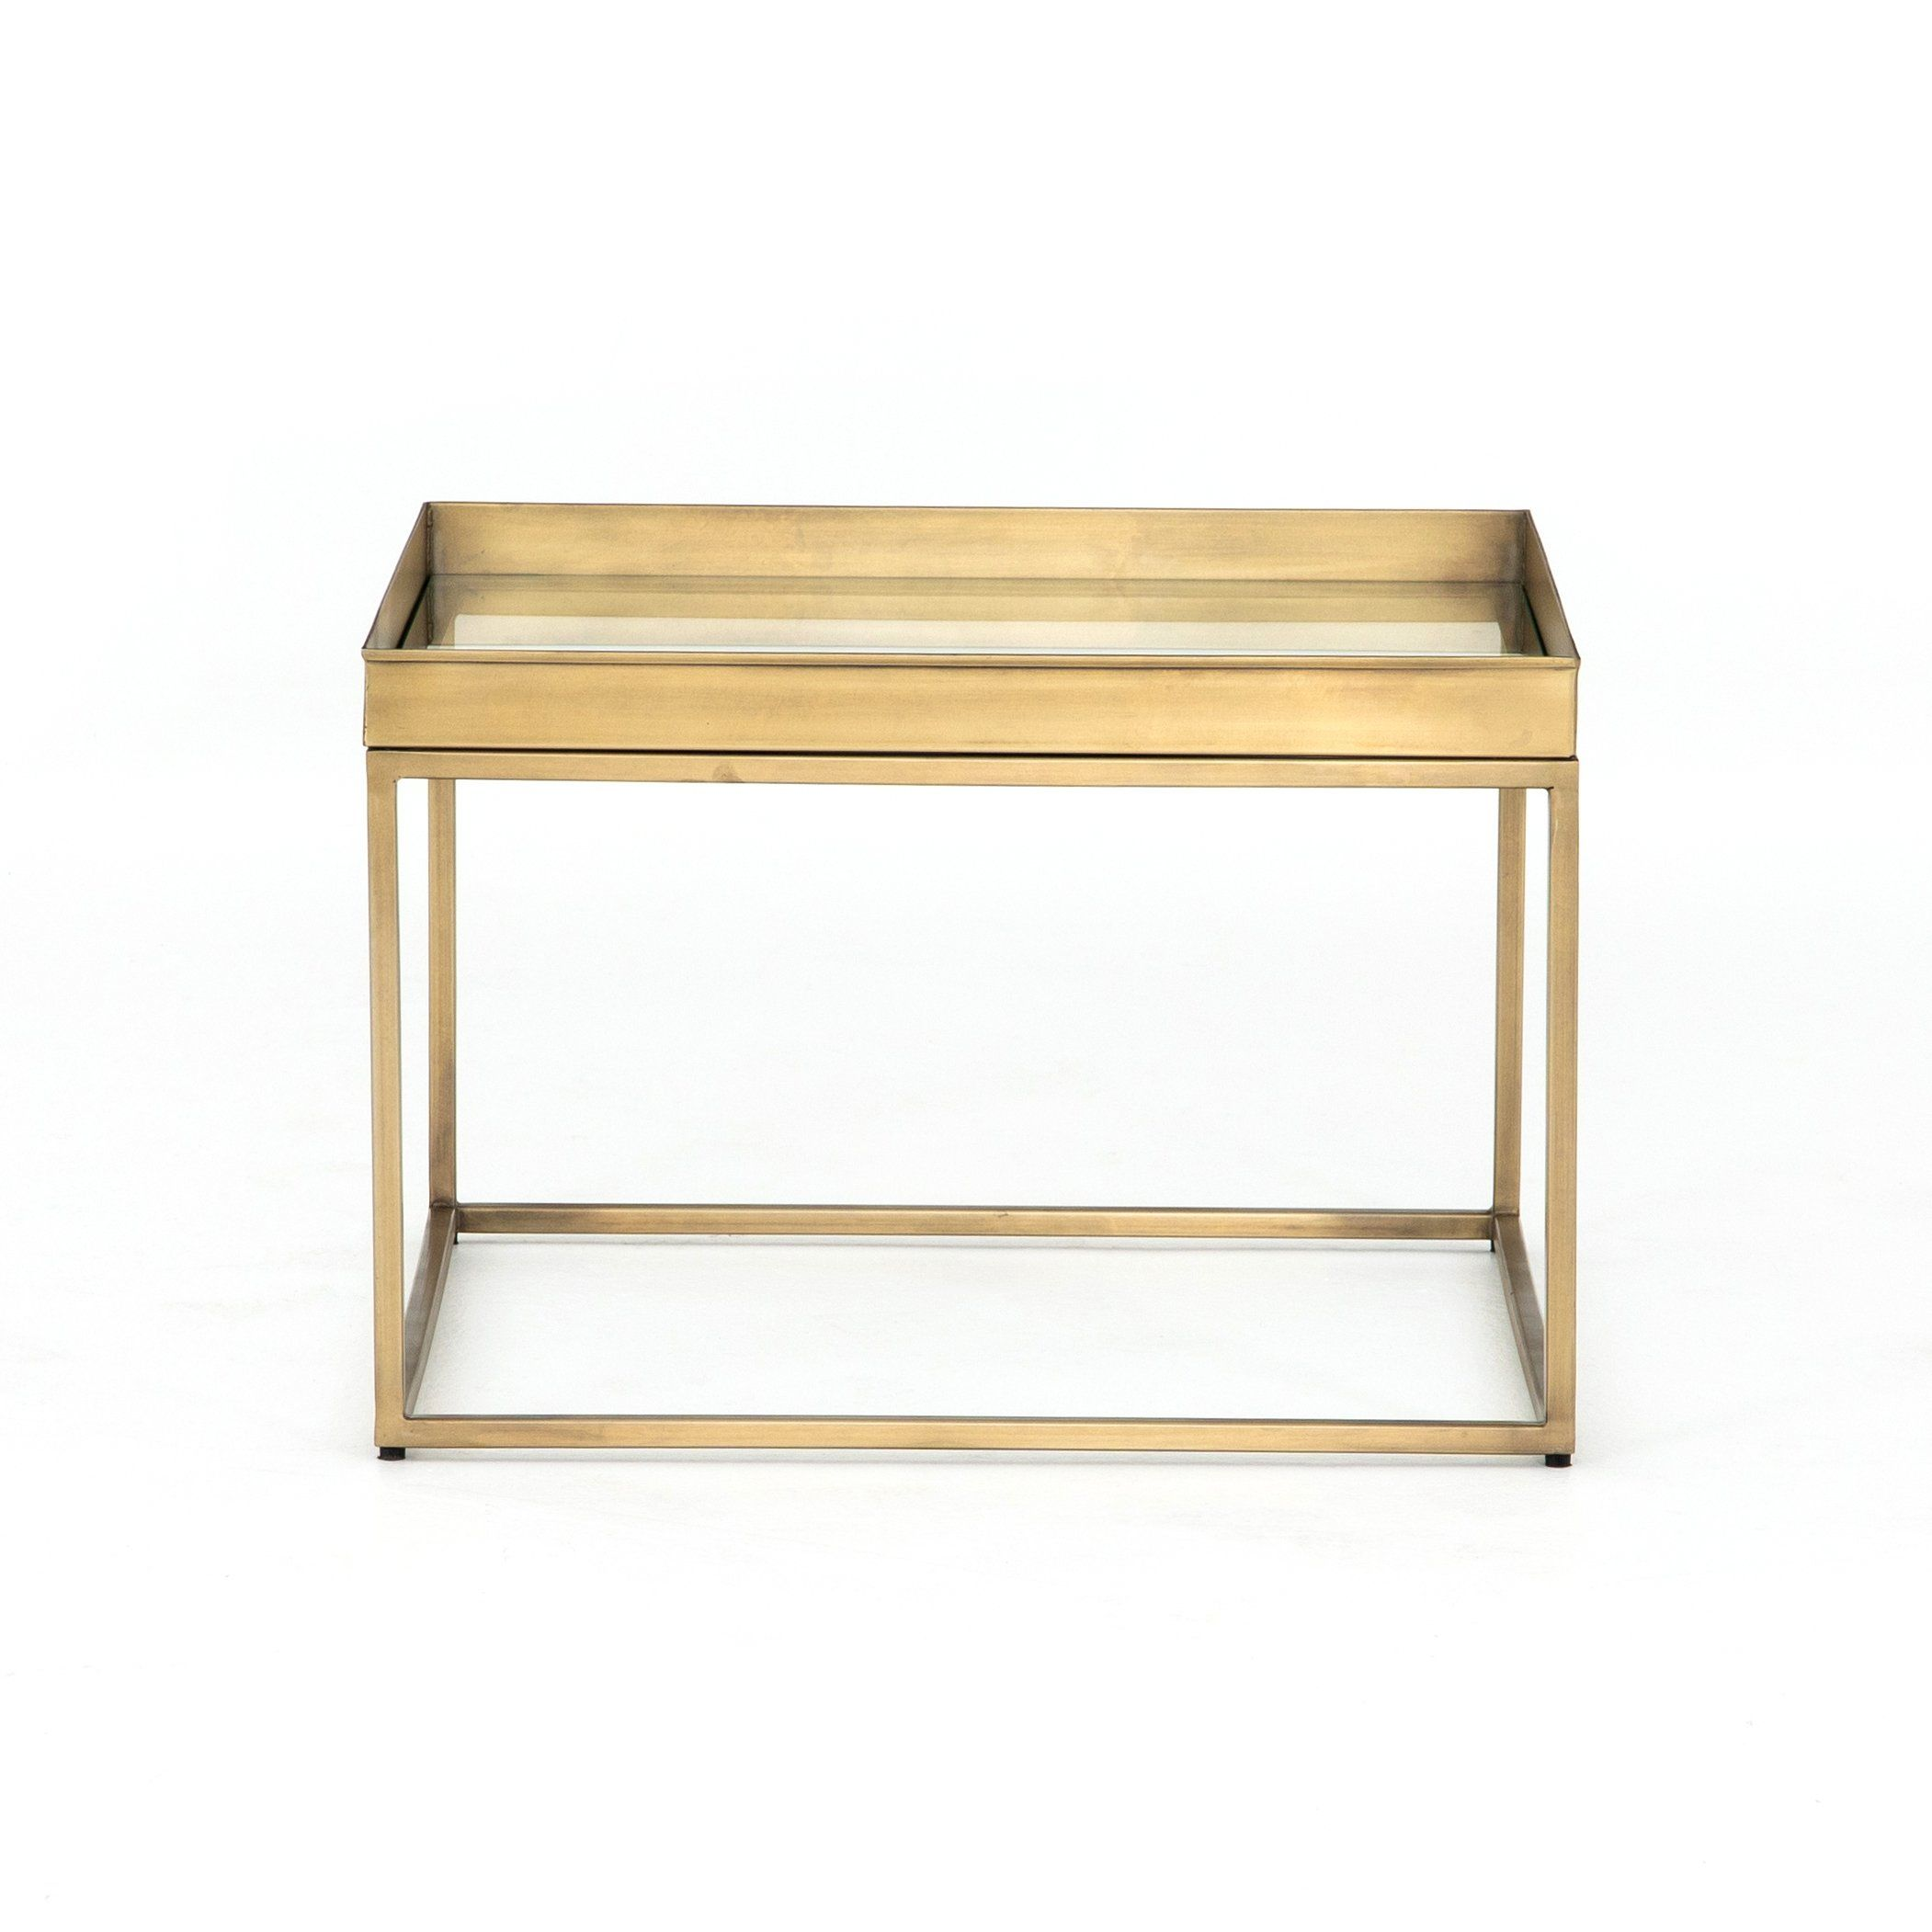 Kline Bunching Table Mirrored Side Tables Table Side Table Wood [ 2102 x 2102 Pixel ]